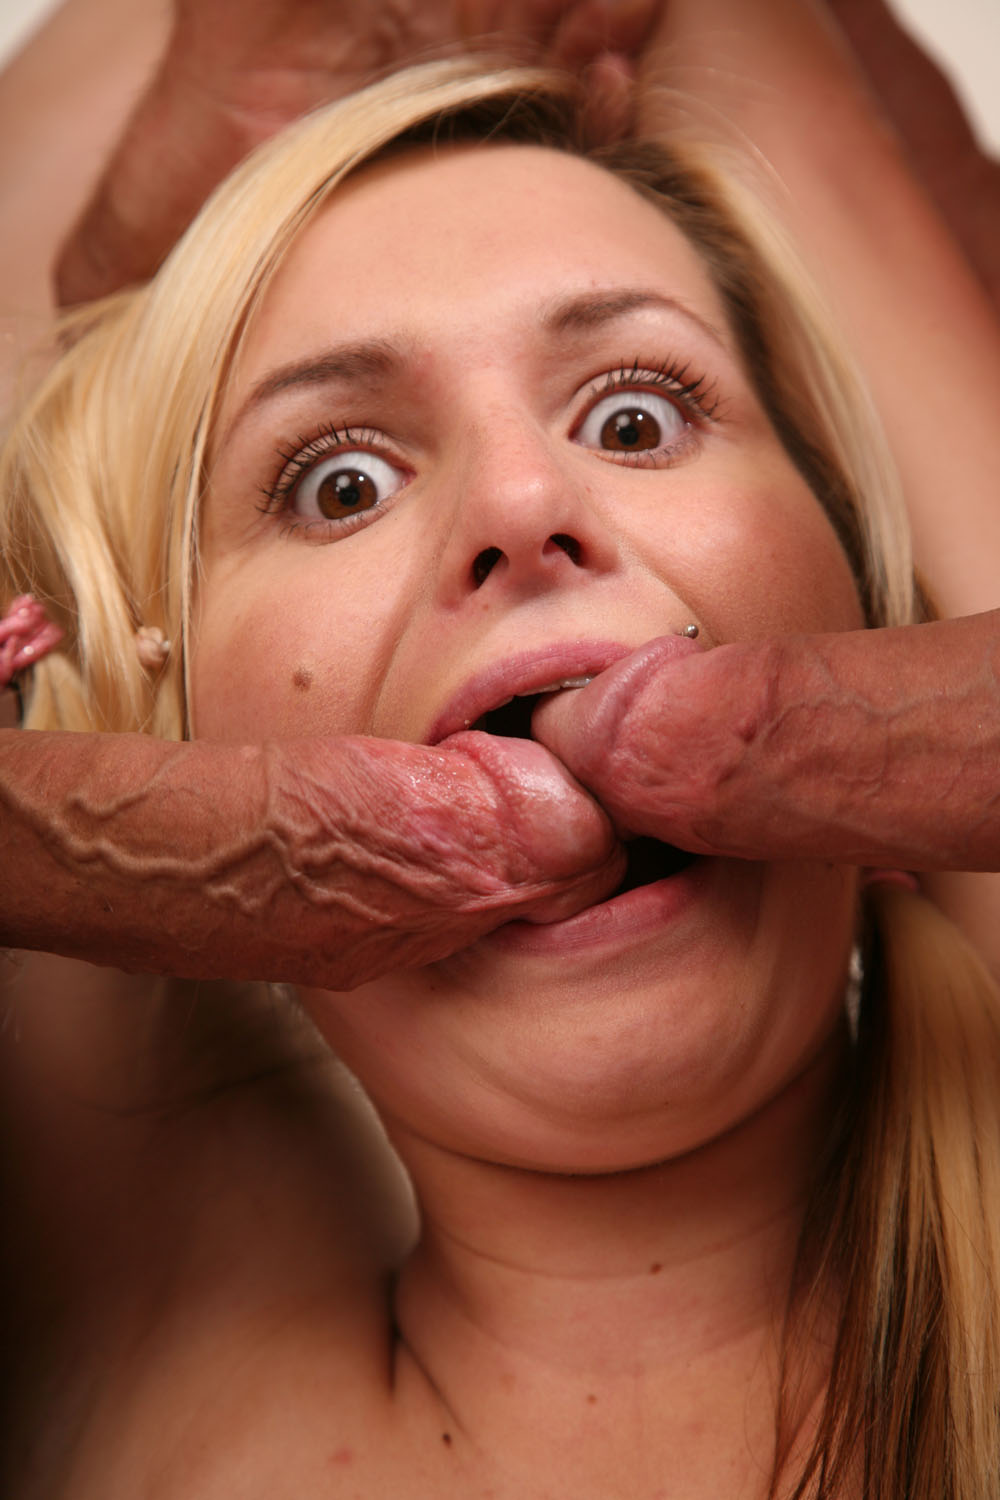 The best multiple dicks in the mouth